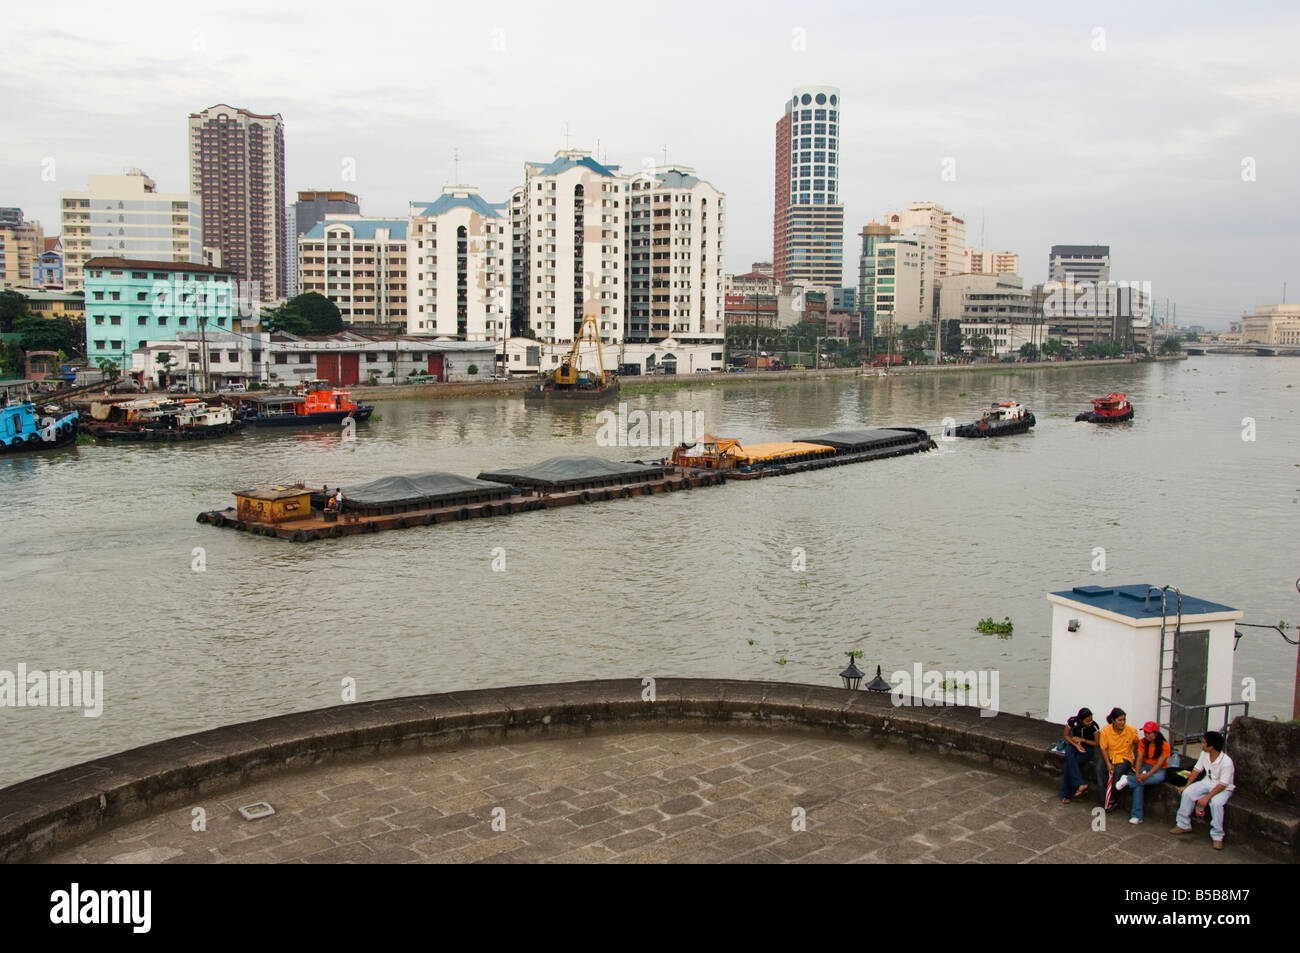 Barge on River Pasig with city skyline behind, Manila, Philippines, Southeast Asia - Stock Image